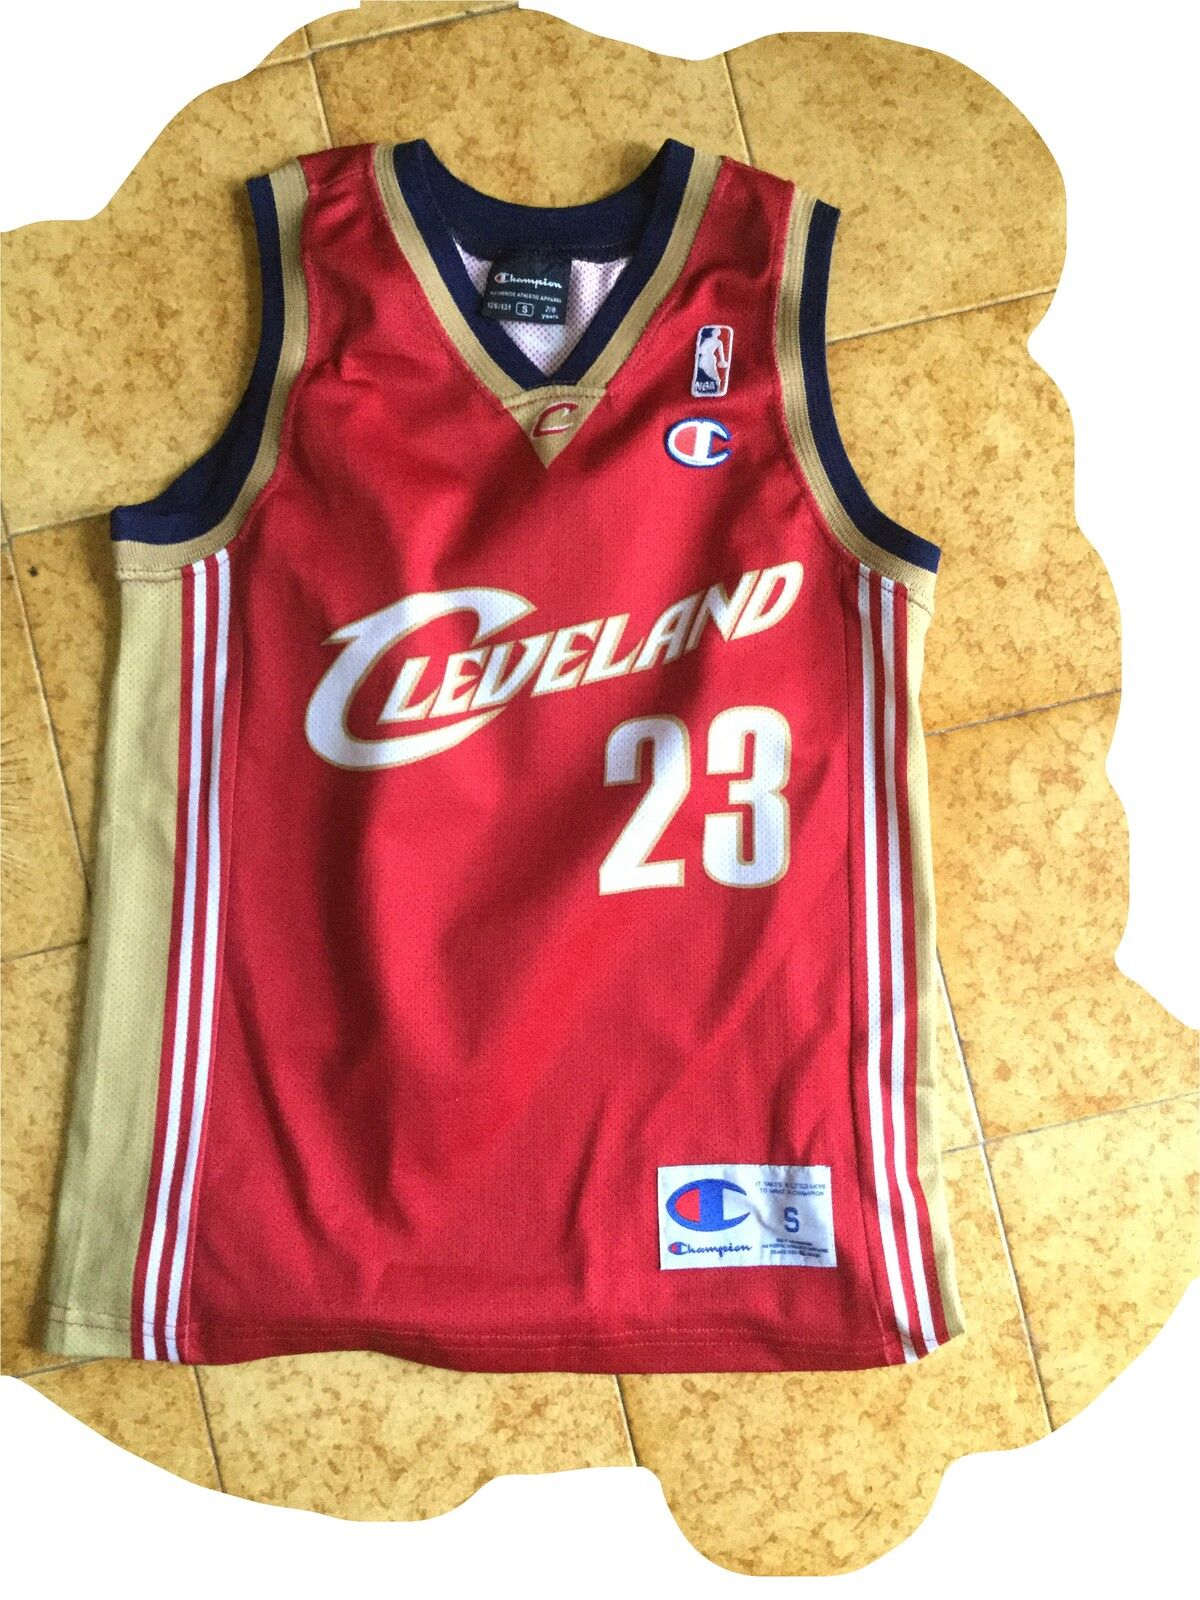 Maglia basket NBA CLEVELAND JAMES 23jersey shirt trikot 7 8 years YOUNG